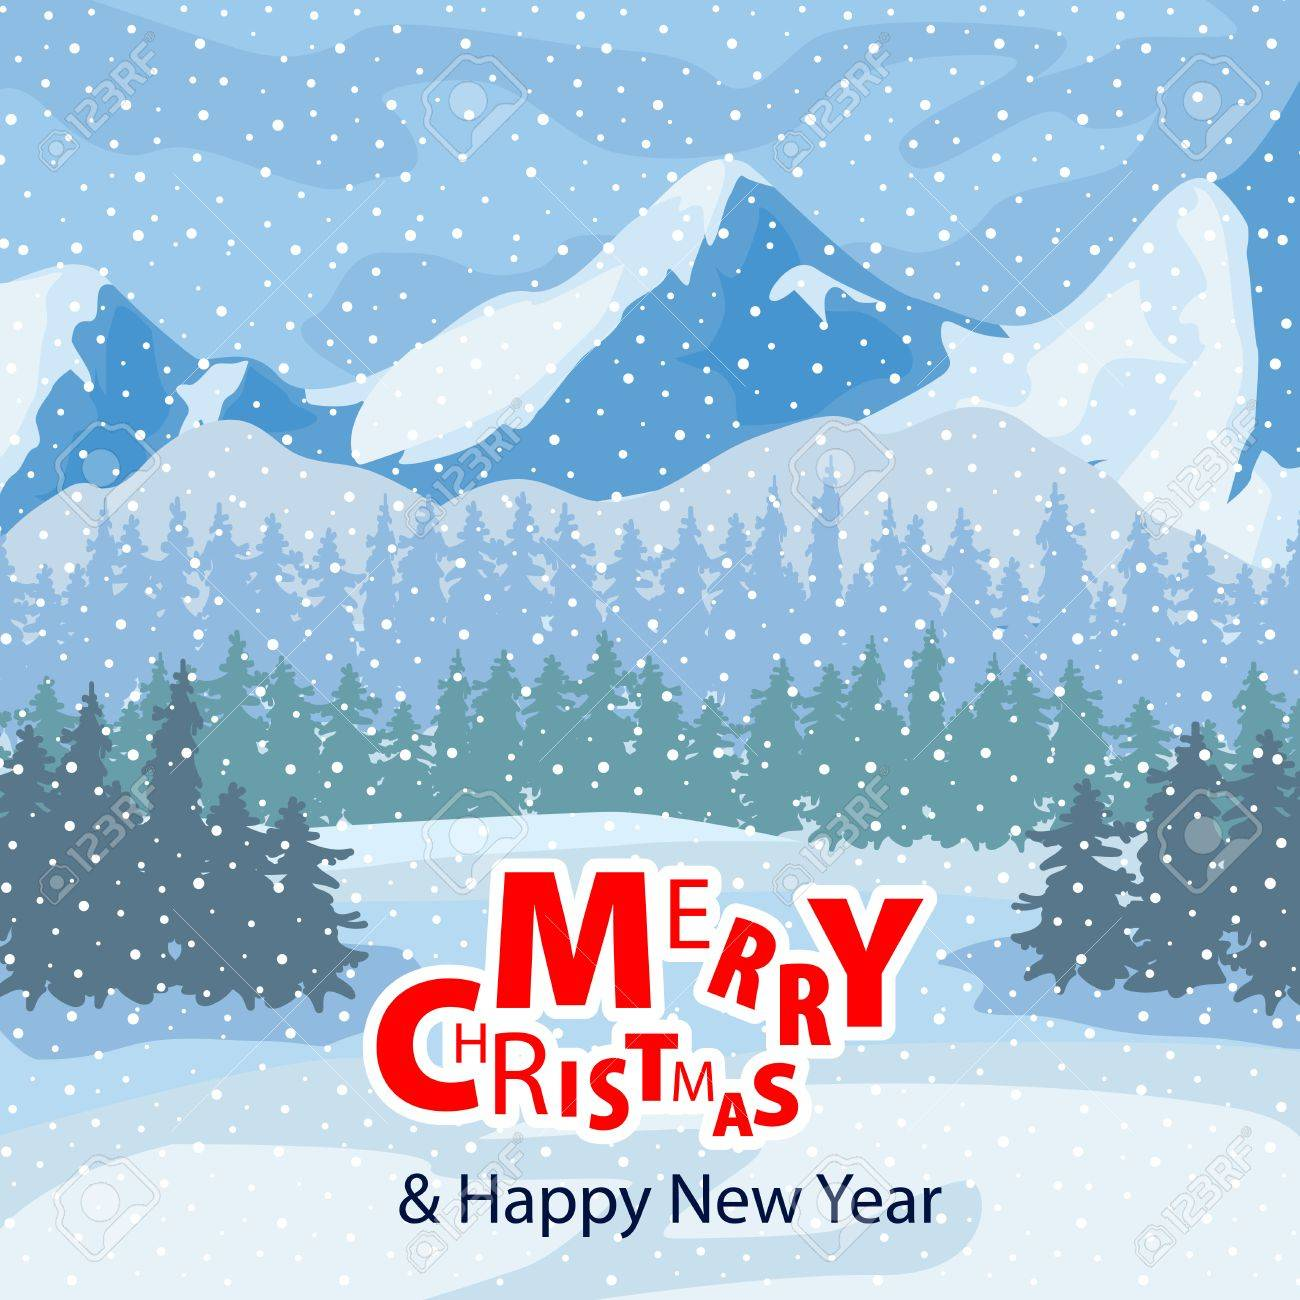 Winter landscape. Mountains and trees in the background. Christmas Celebration. Winter landscape can be used for your Christmas design. - 66904602